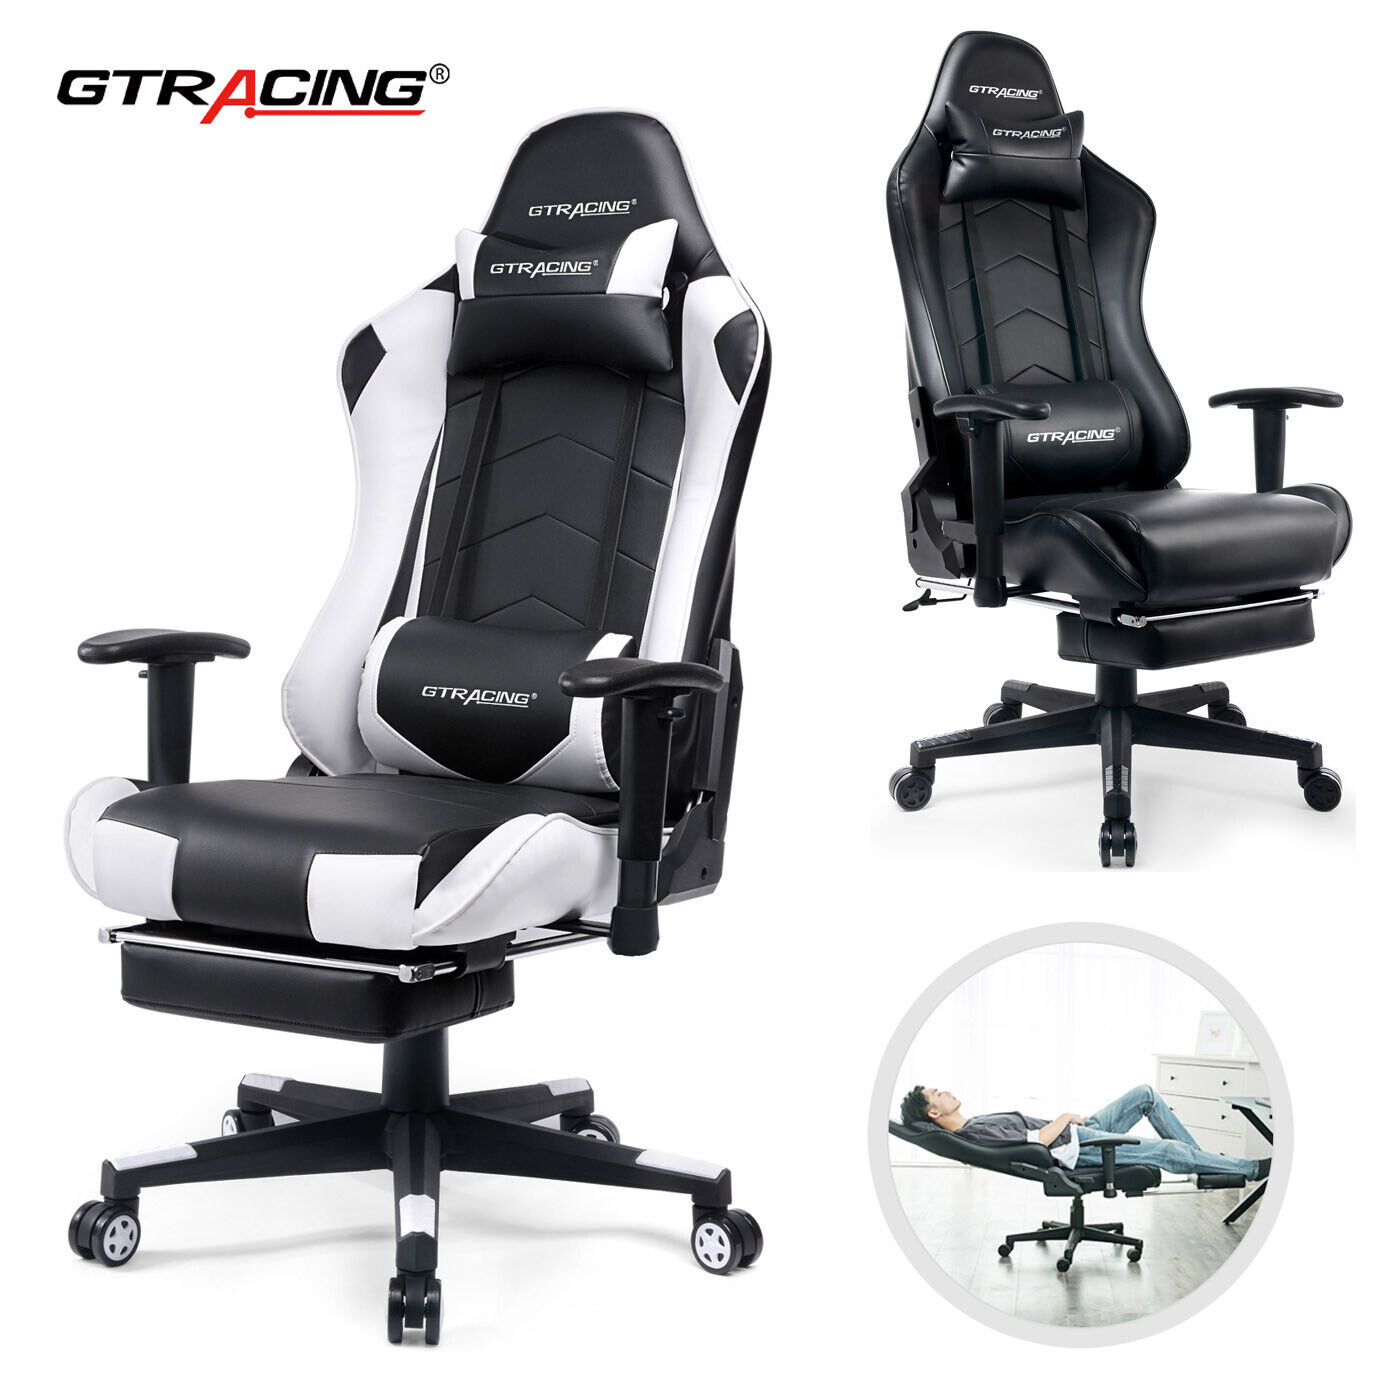 Picture of: Gtracing Ergonomic Chair Racing Chair Backrest And Seat Height Adjustment Gt101 Chairs Stools Business Industrial Sidra Hospital